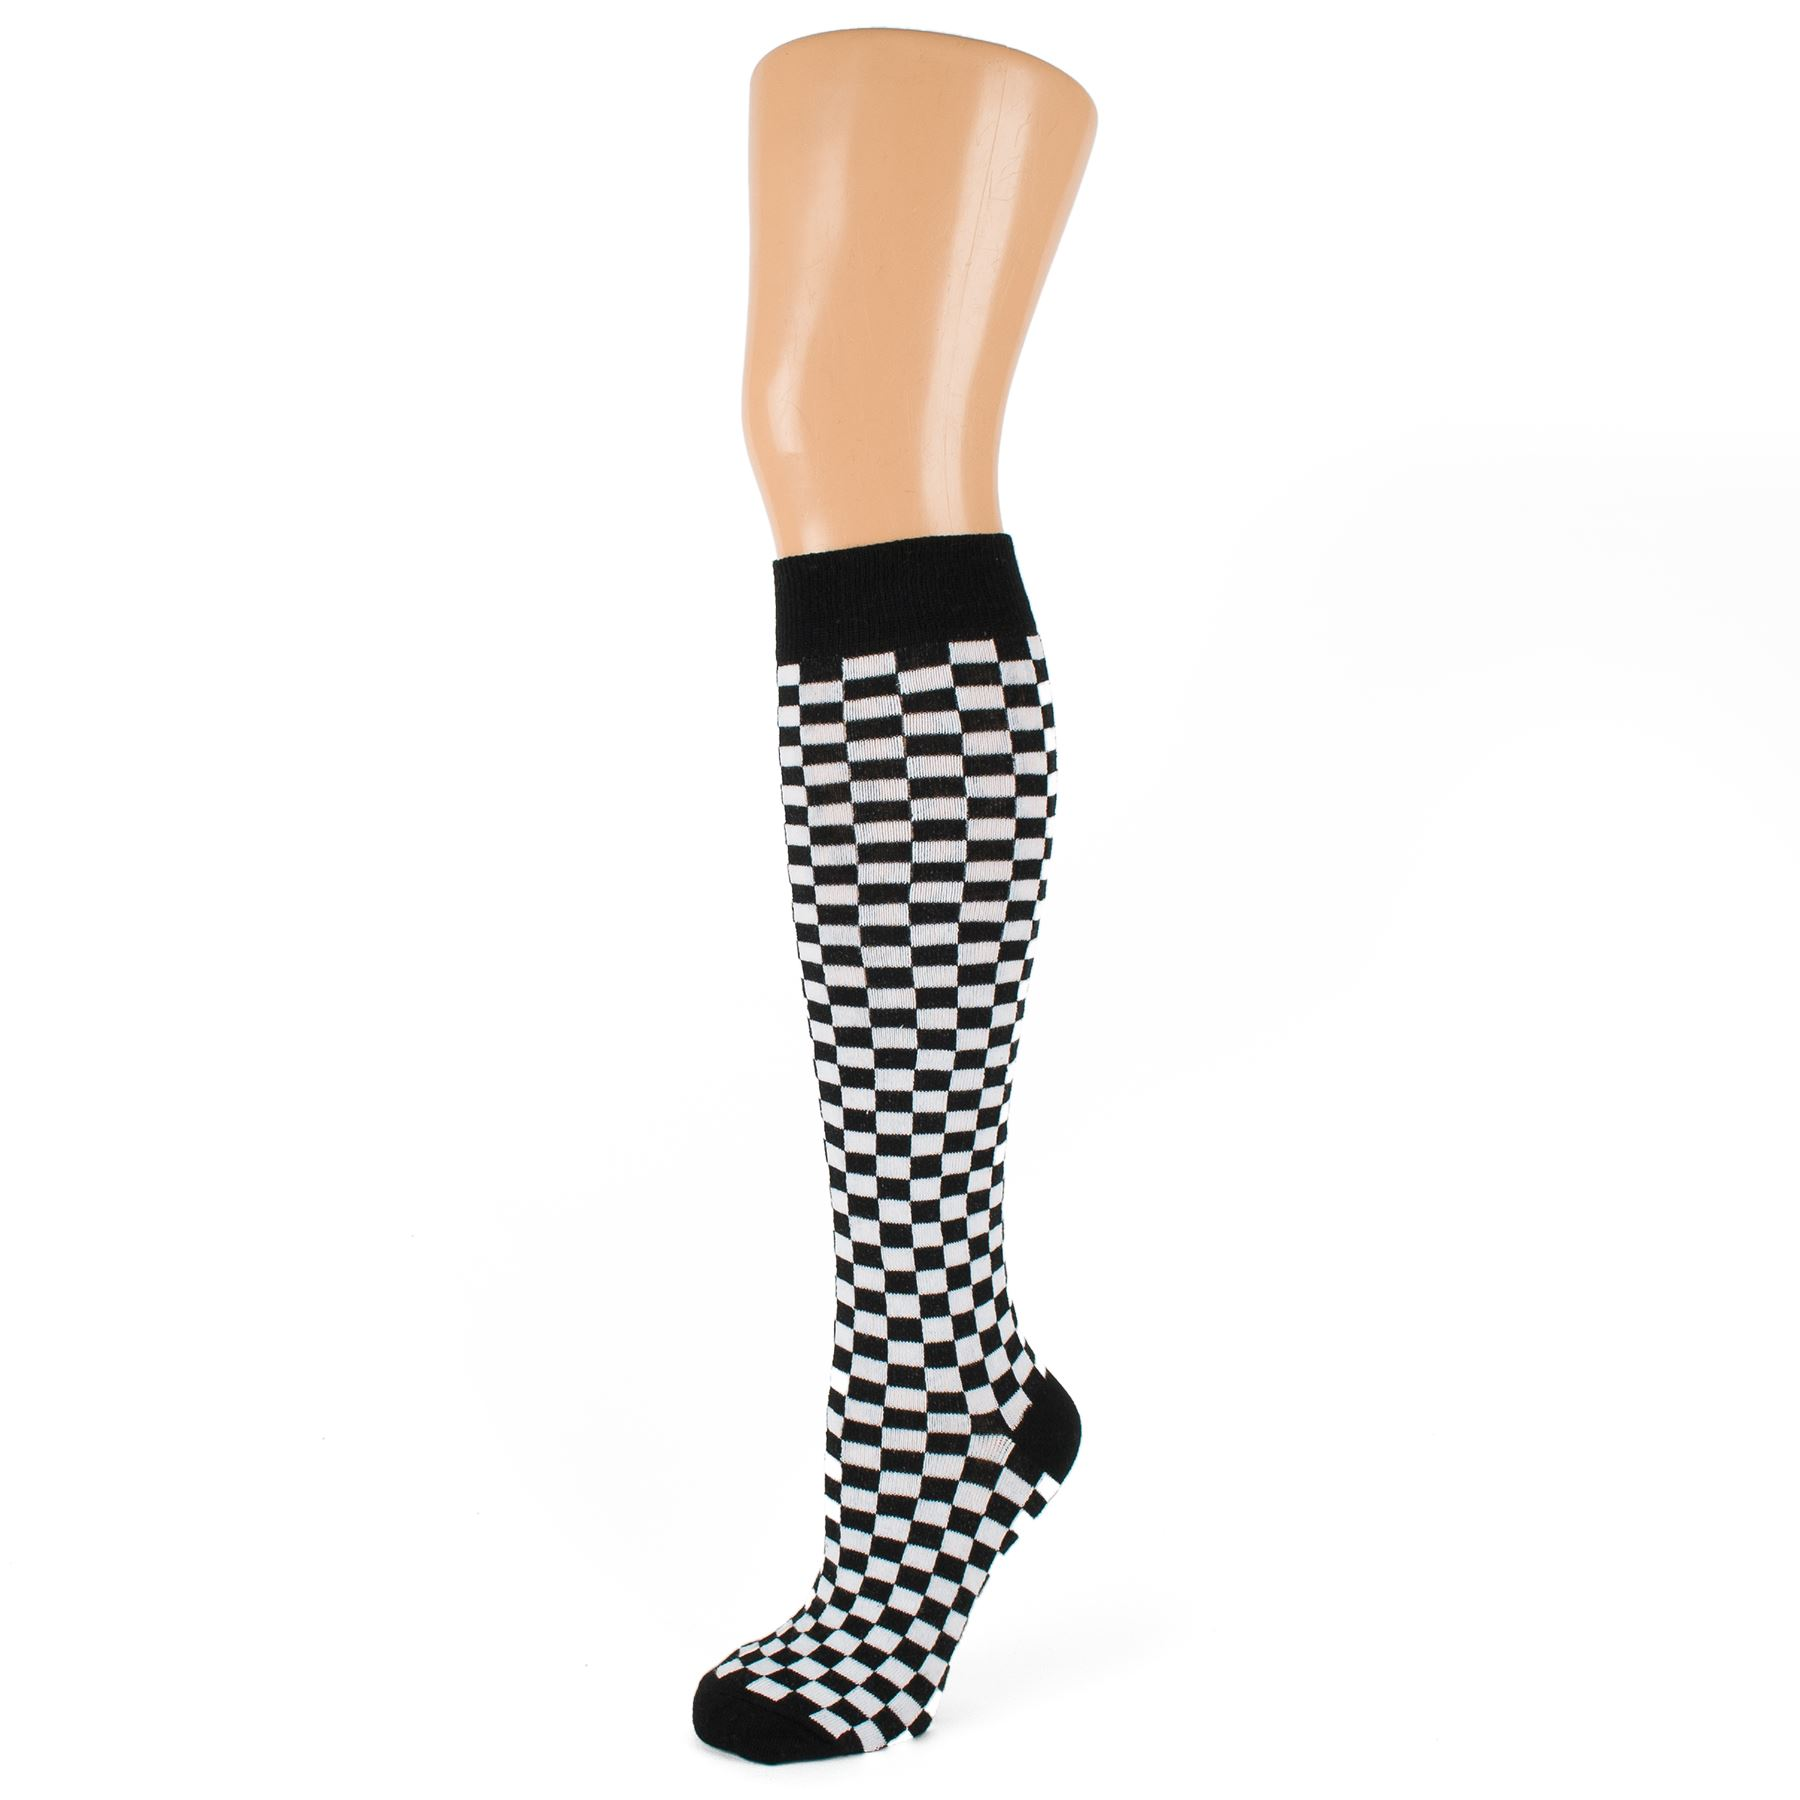 Checkered socks are bright and beautiful, with inch wide checks from ankle to knee, with a solid colored cushioned foot. Our Checkered socks are comfortable, durable, and machine-washable, making it easy to put together a clown outfit or everyday clothes. Patterned socks are less stretchy in the calf than solids or stripes.